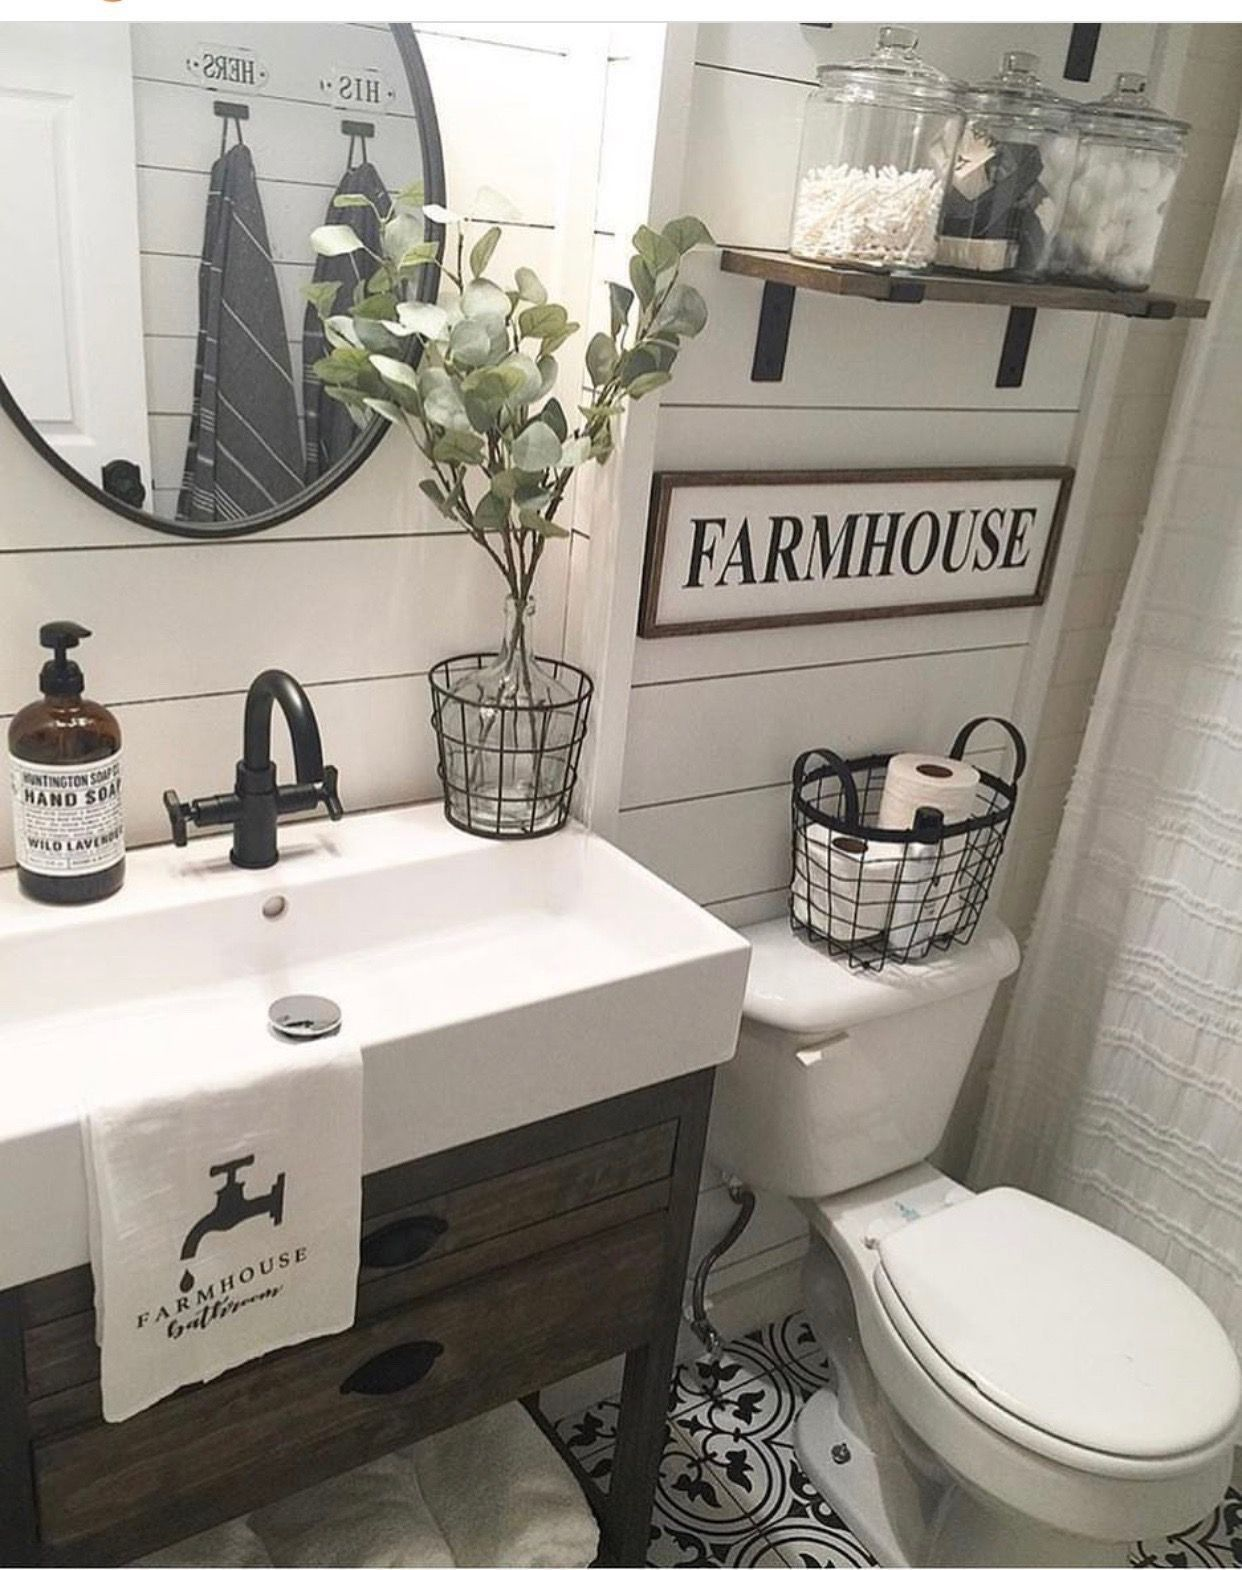 Half Bathroom Ideas Develop A Stylish And Also Functional Half Bath With Ideas From The Farmhouse Bathroom Vanity Modern Farmhouse Bathroom Bathrooms Remodel